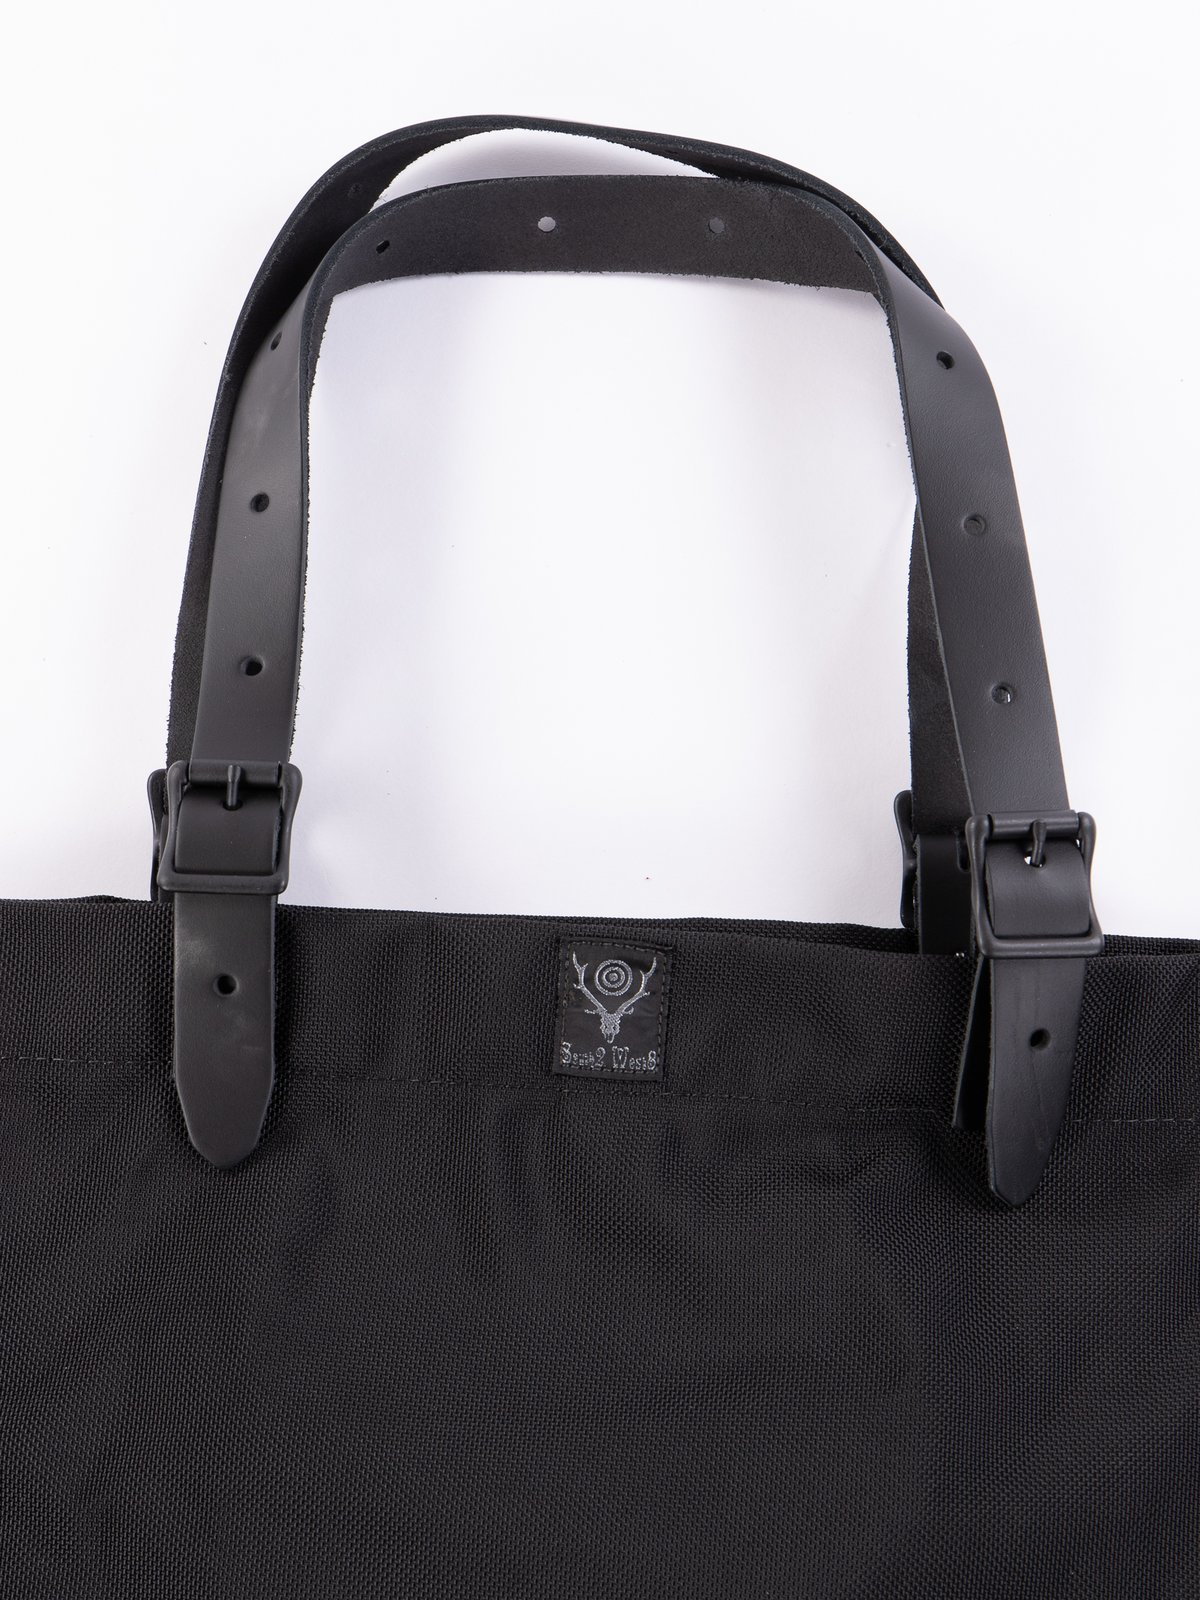 Black Ballistic Tall Canal Park Tote - Image 2